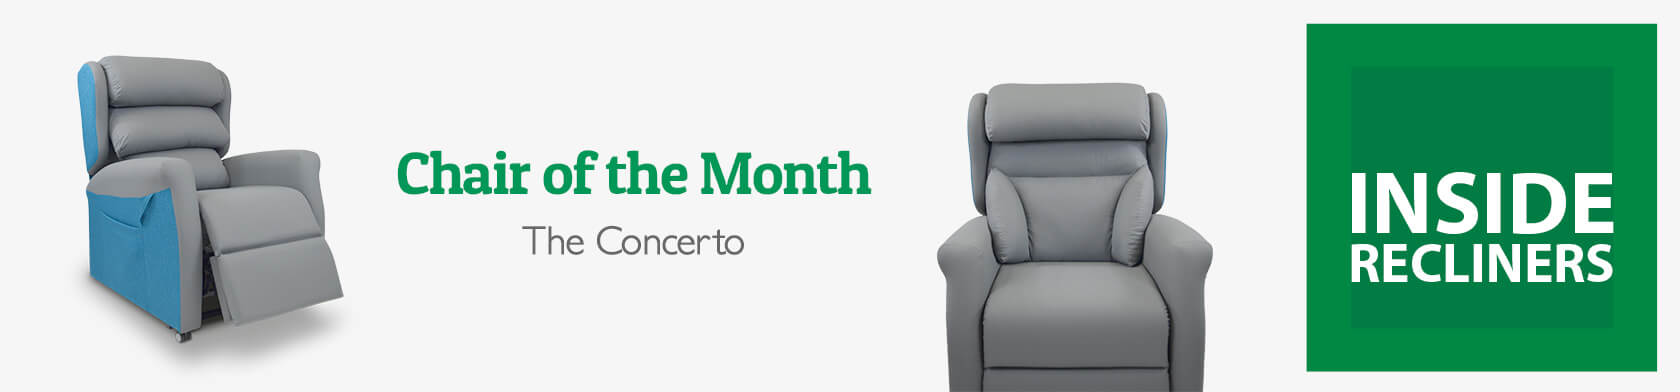 Chair of the Month – The Concerto